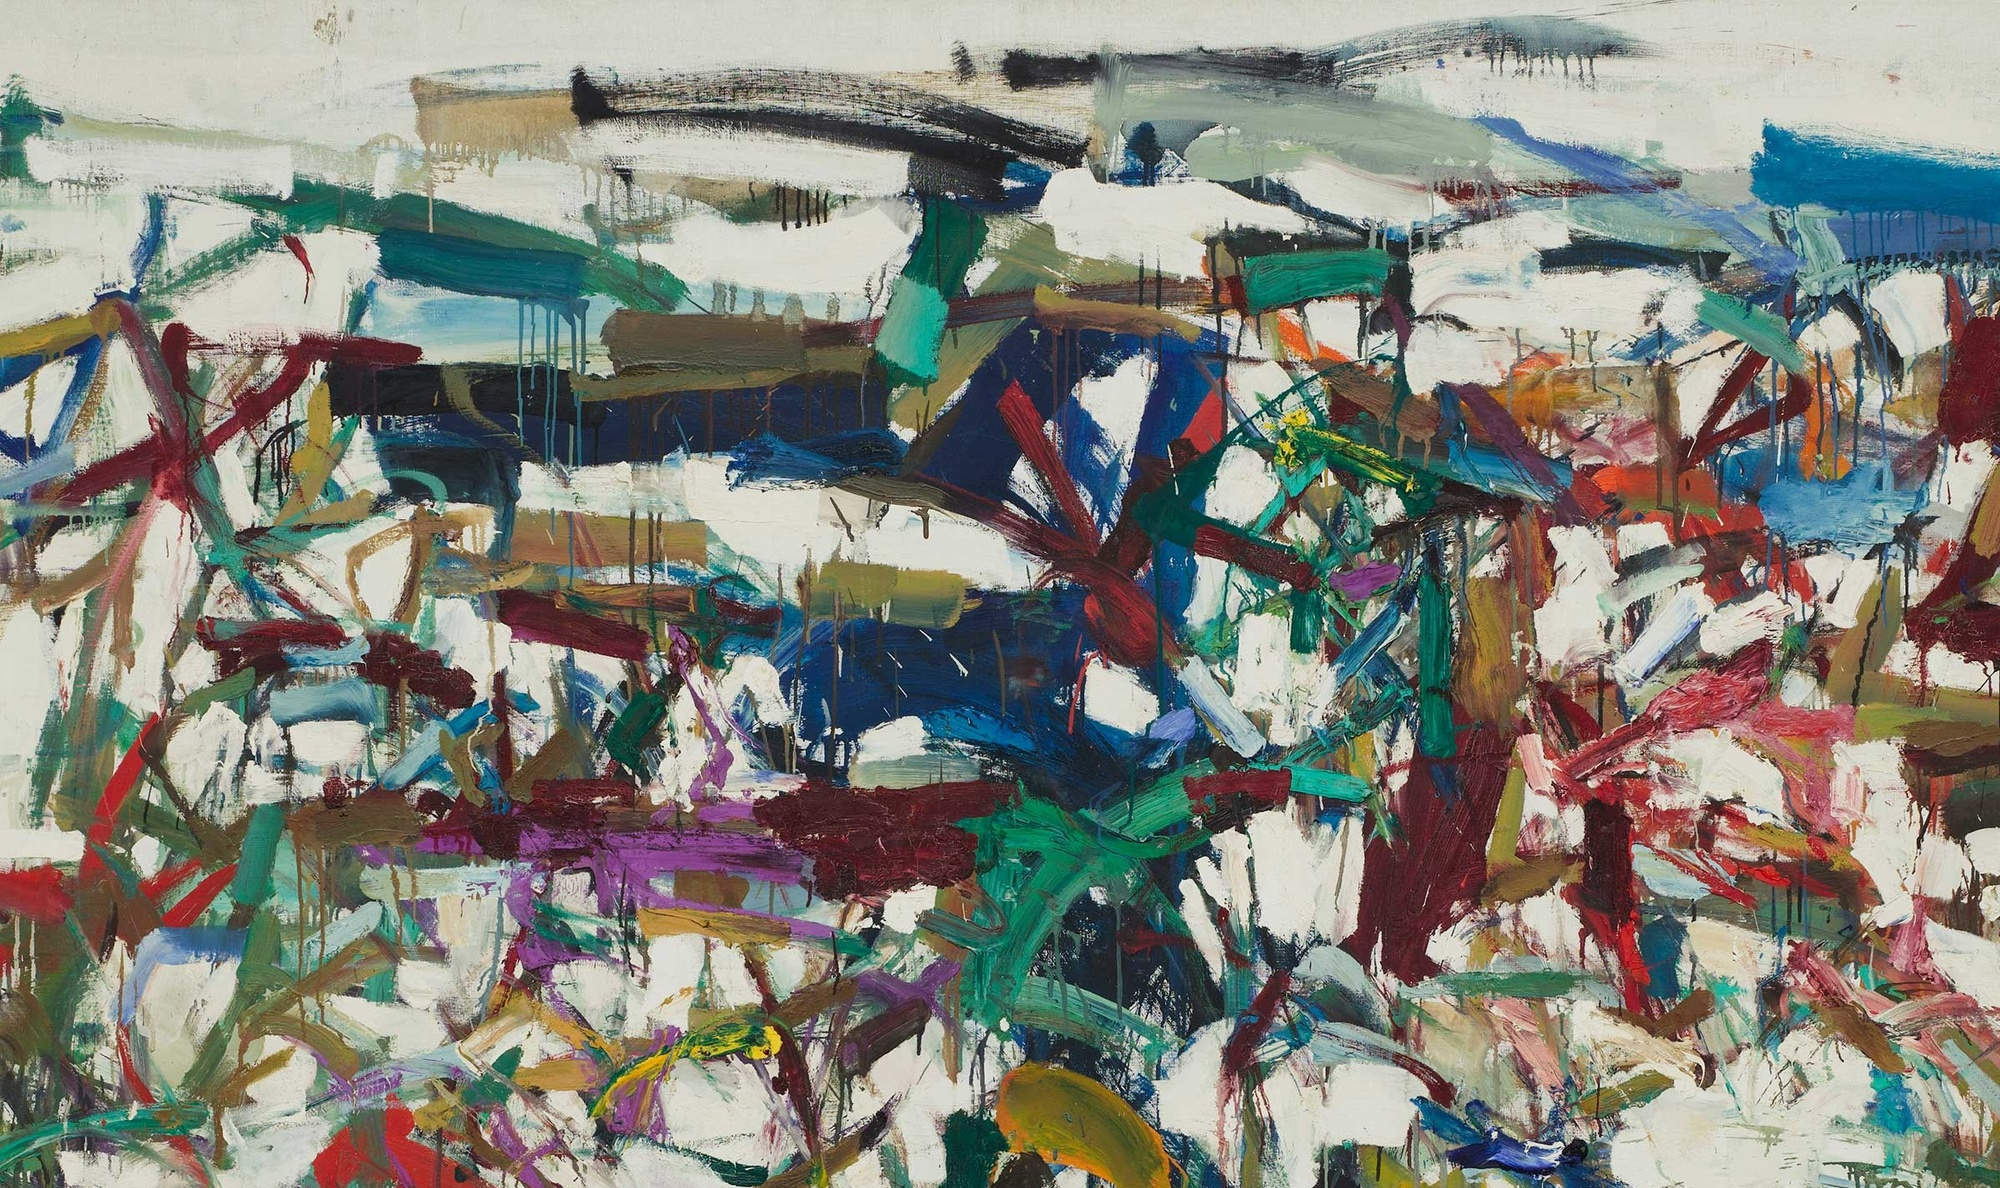 joan mitchell making space 1 - slider, entertainment - New York Art Exhibits - New York, Art - New York Art Exhibits